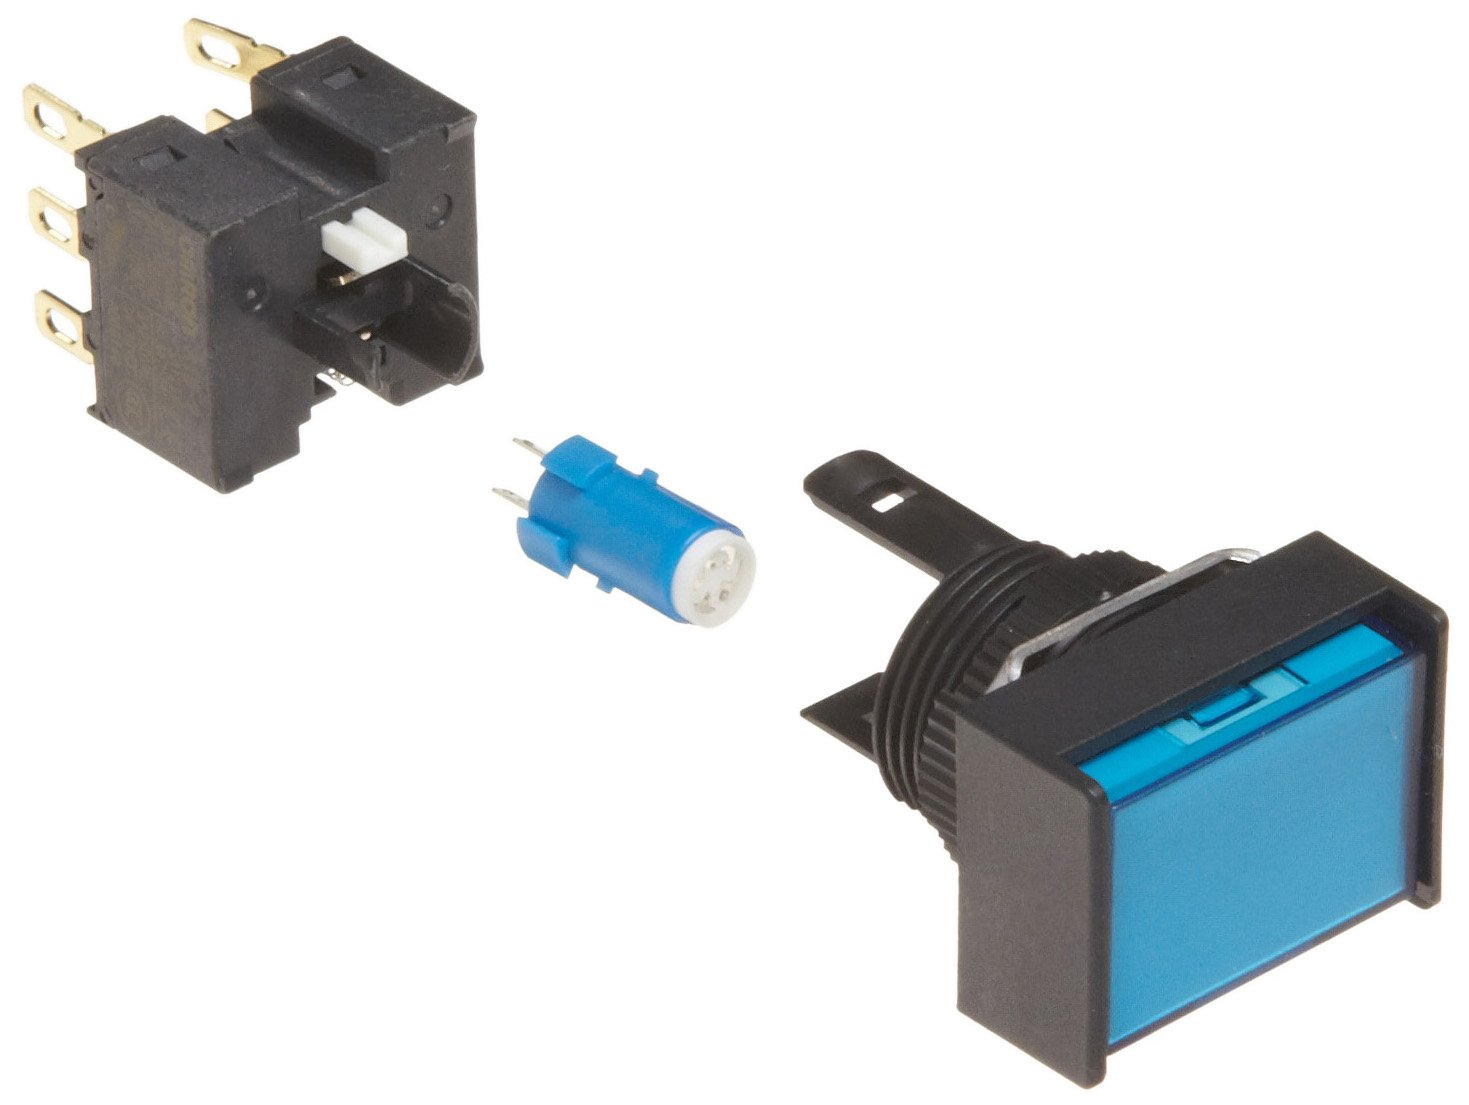 Omron A165L-JAM-5D-2 Two Way Guard Type Pushbutton and Switch, Solder Terminal, IP65 Oil-Resistant, 16mm Mounting Aperture, LED Lighted, Momentary Operation, Rectangular, Blue, 5 VDC Rated Voltage, Double Pole Double Throw Contacts